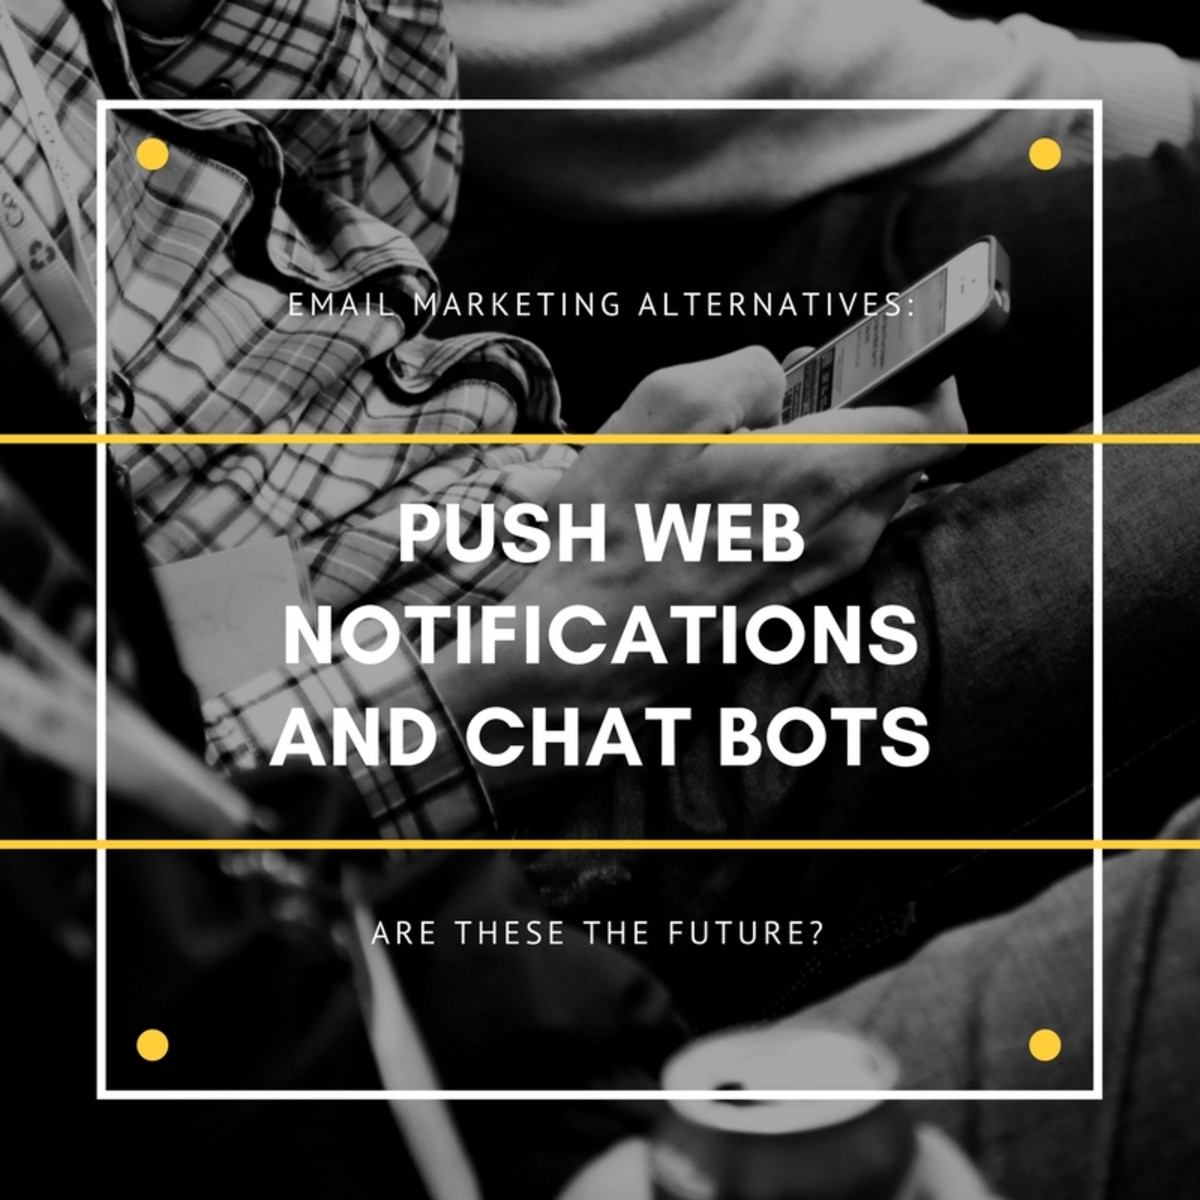 Email Marketing Alternatives: Are Push Web Notifications and Chat Bots the Answer?